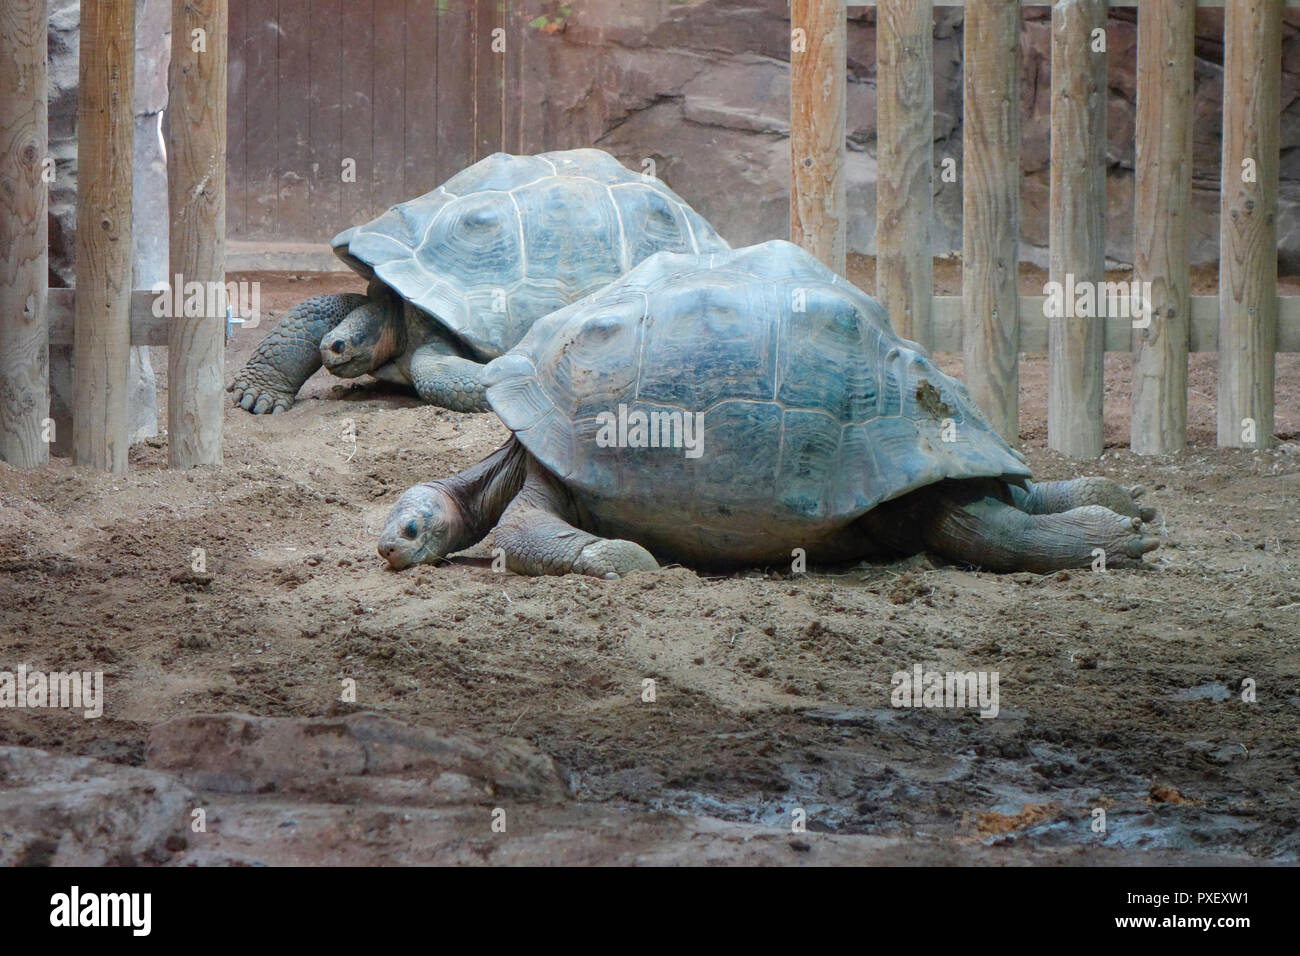 Turtles in Galapagos Turtle House (Giants of the Galápagos) at ZSL London Zoo, UK - Stock Image